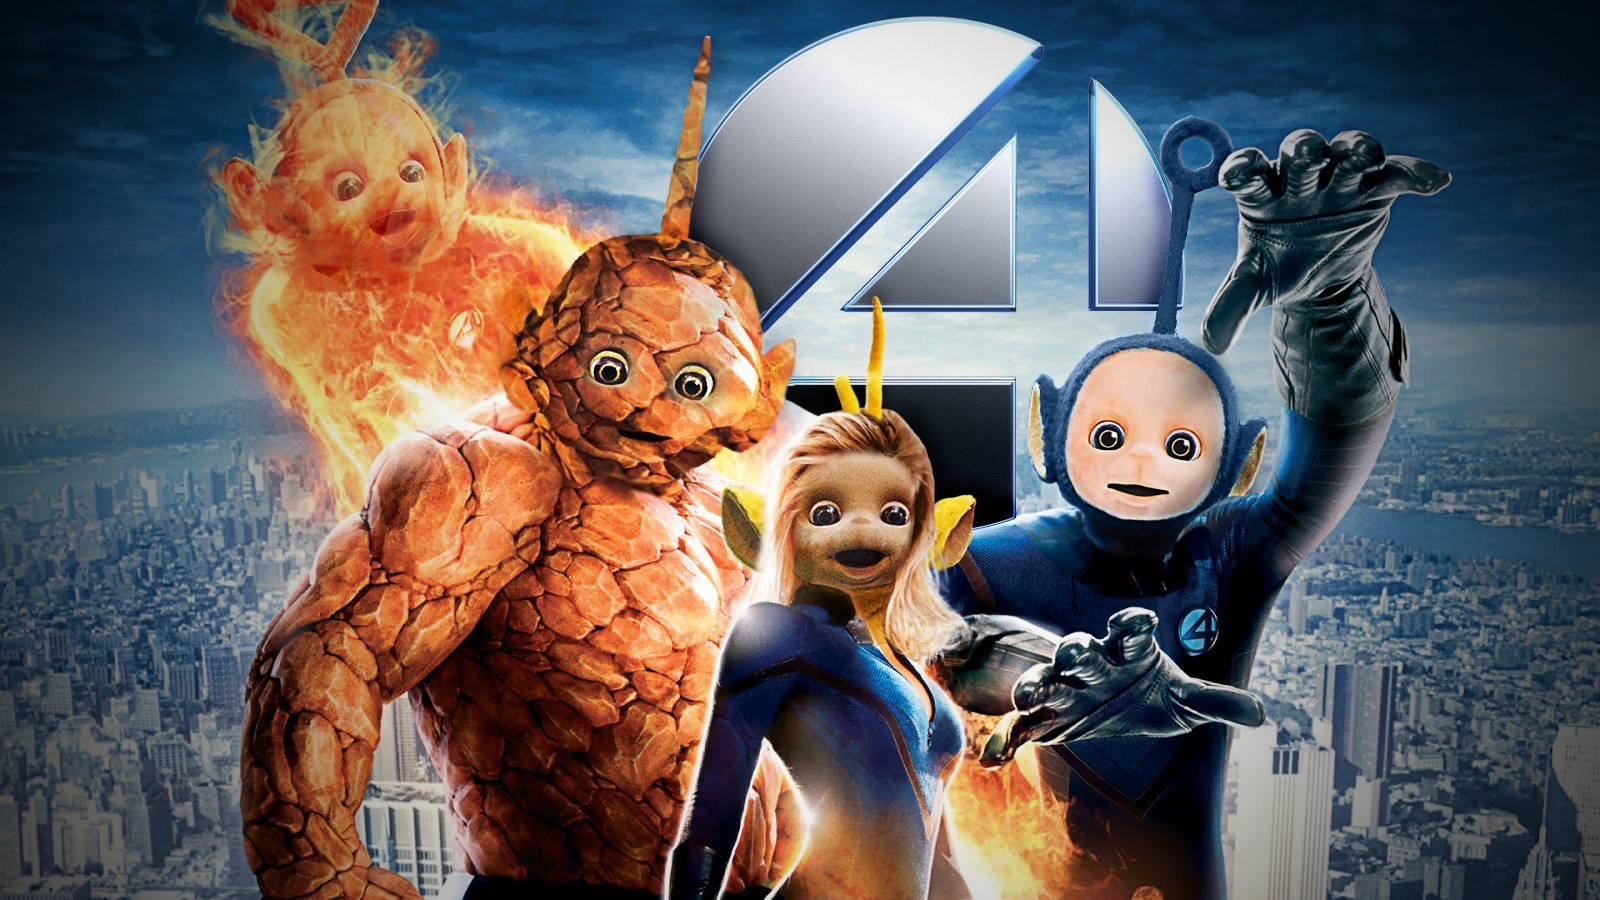 Fantastic Four Photo manipulation